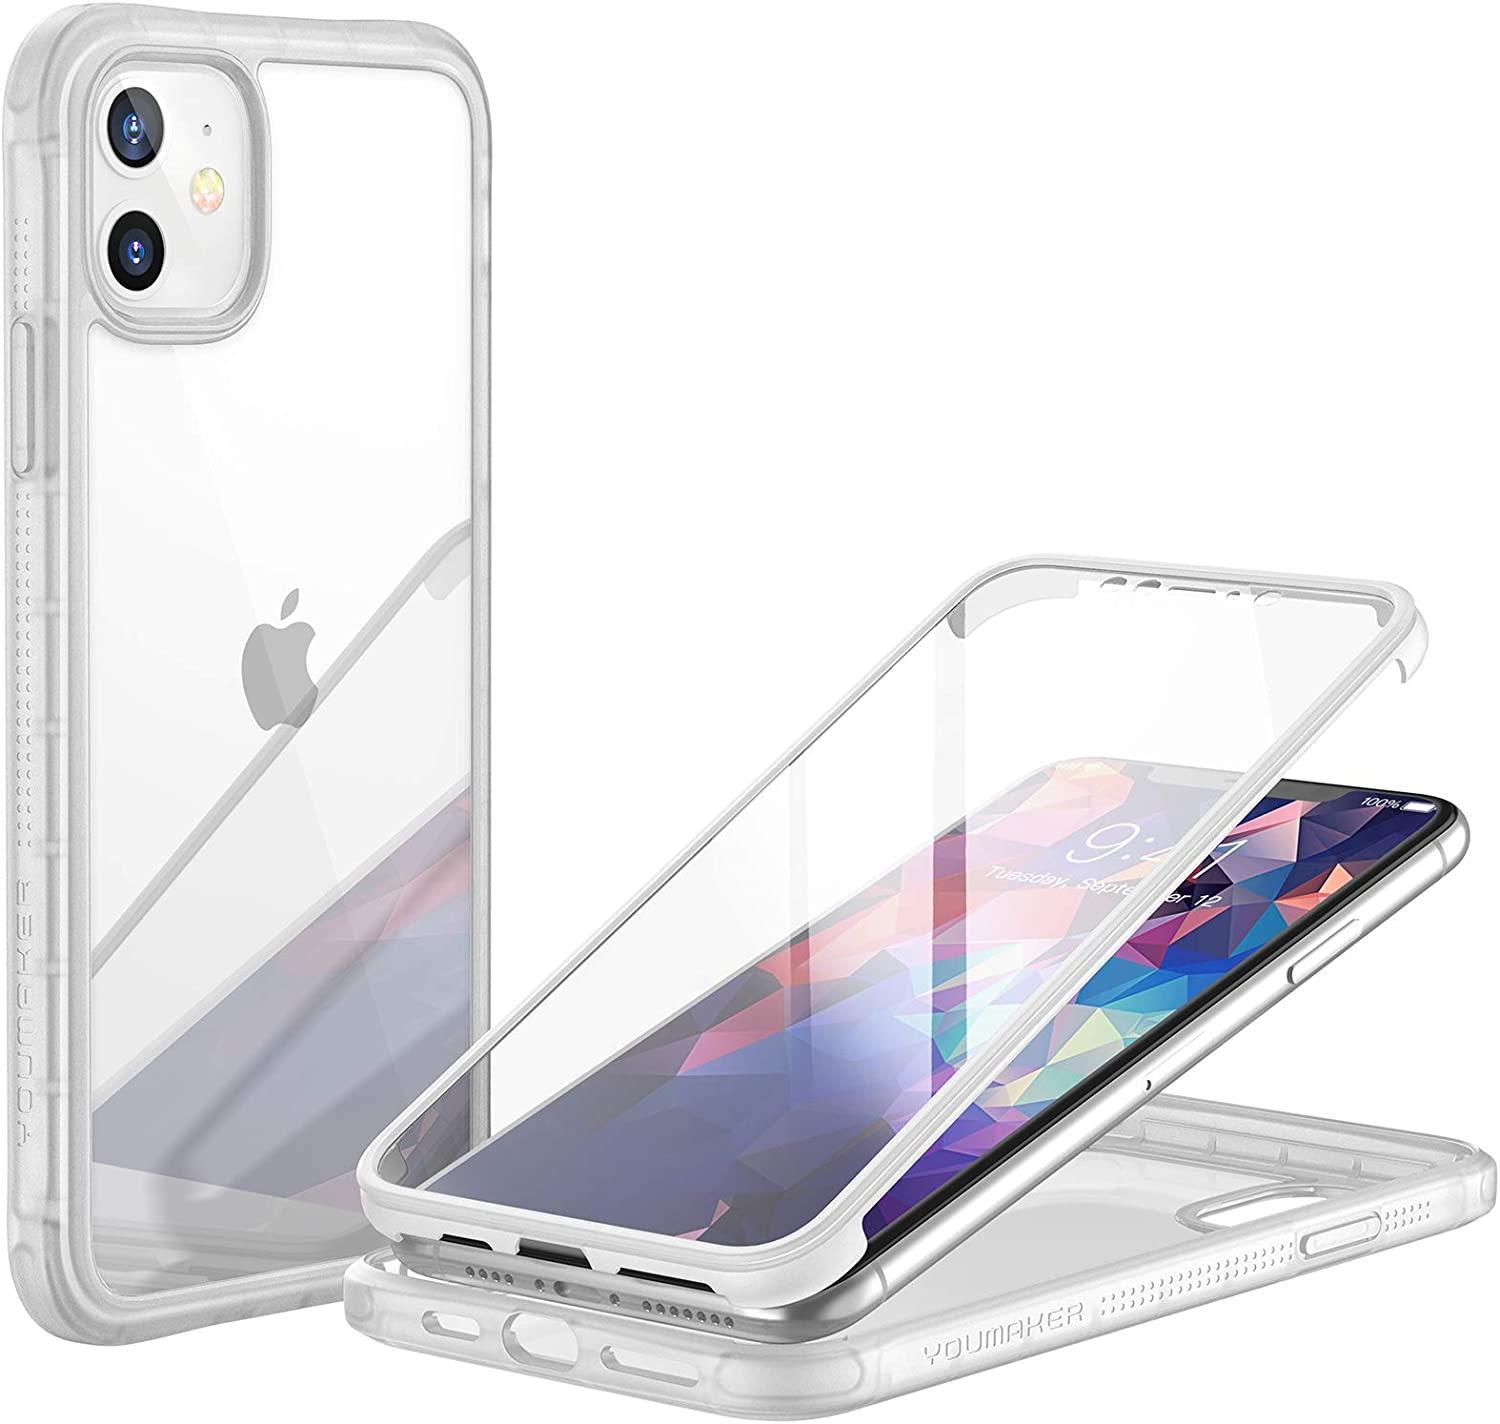 YOUMAKER [2021 Upgraded] Janus Designed for iPhone 11 Case with Built-in Tempered Glass Screen Protector Full Body Rugged Slim Fit Clear iPhone 11 6.1 Inch - Clear